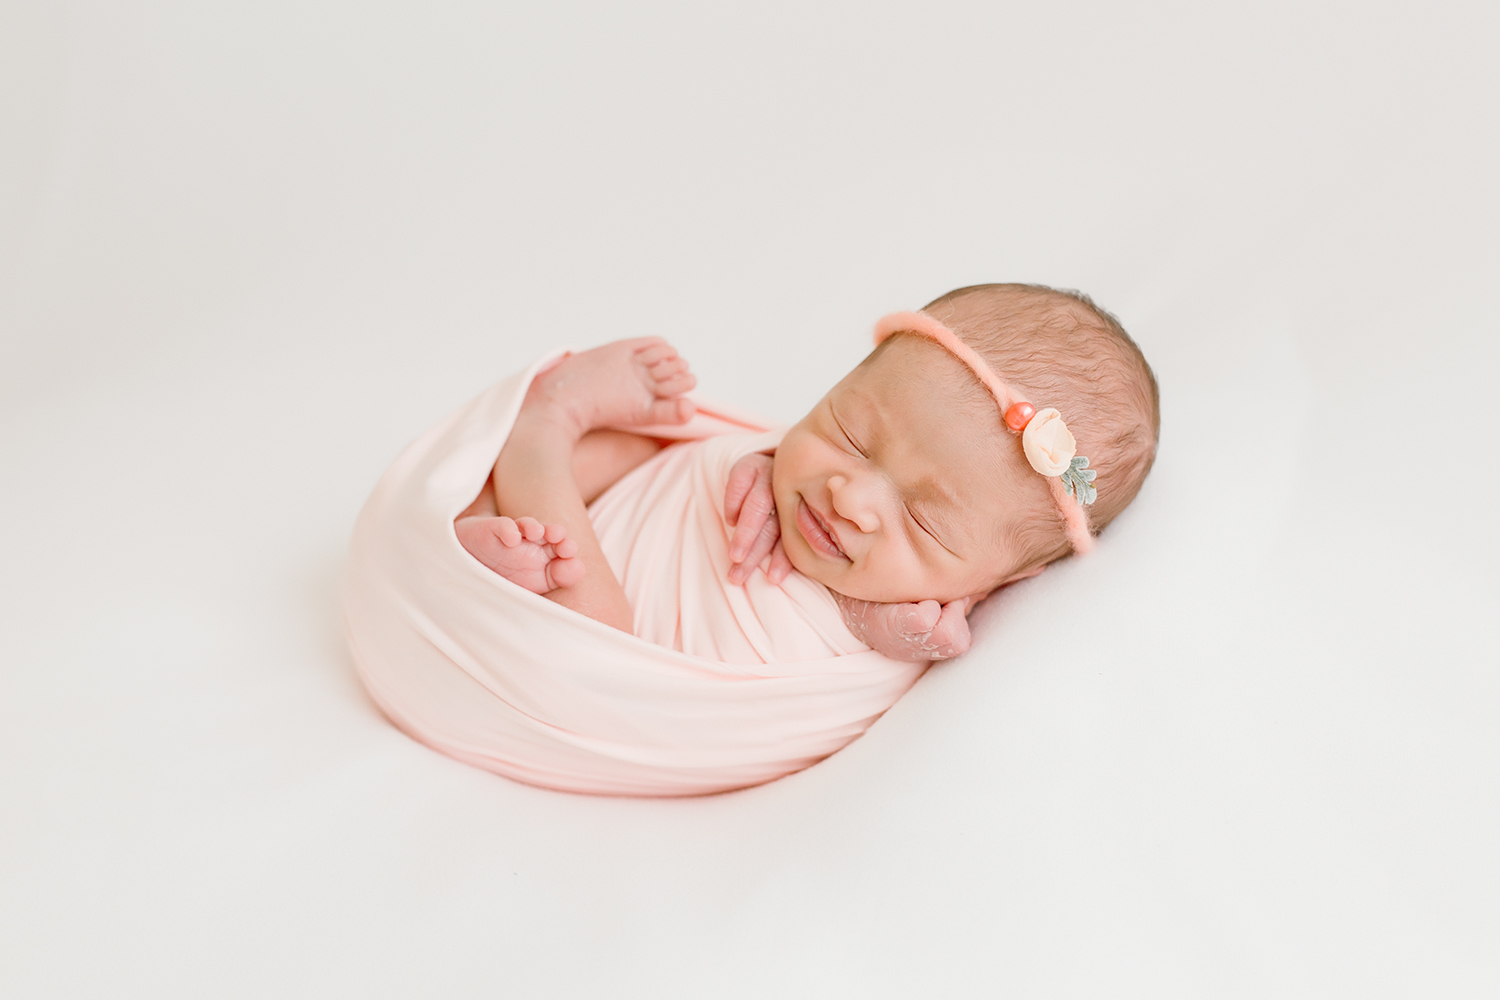 Northern-VA-Newborn-Photographer-Northern-VA-Newborn-Photographer-203.jpg